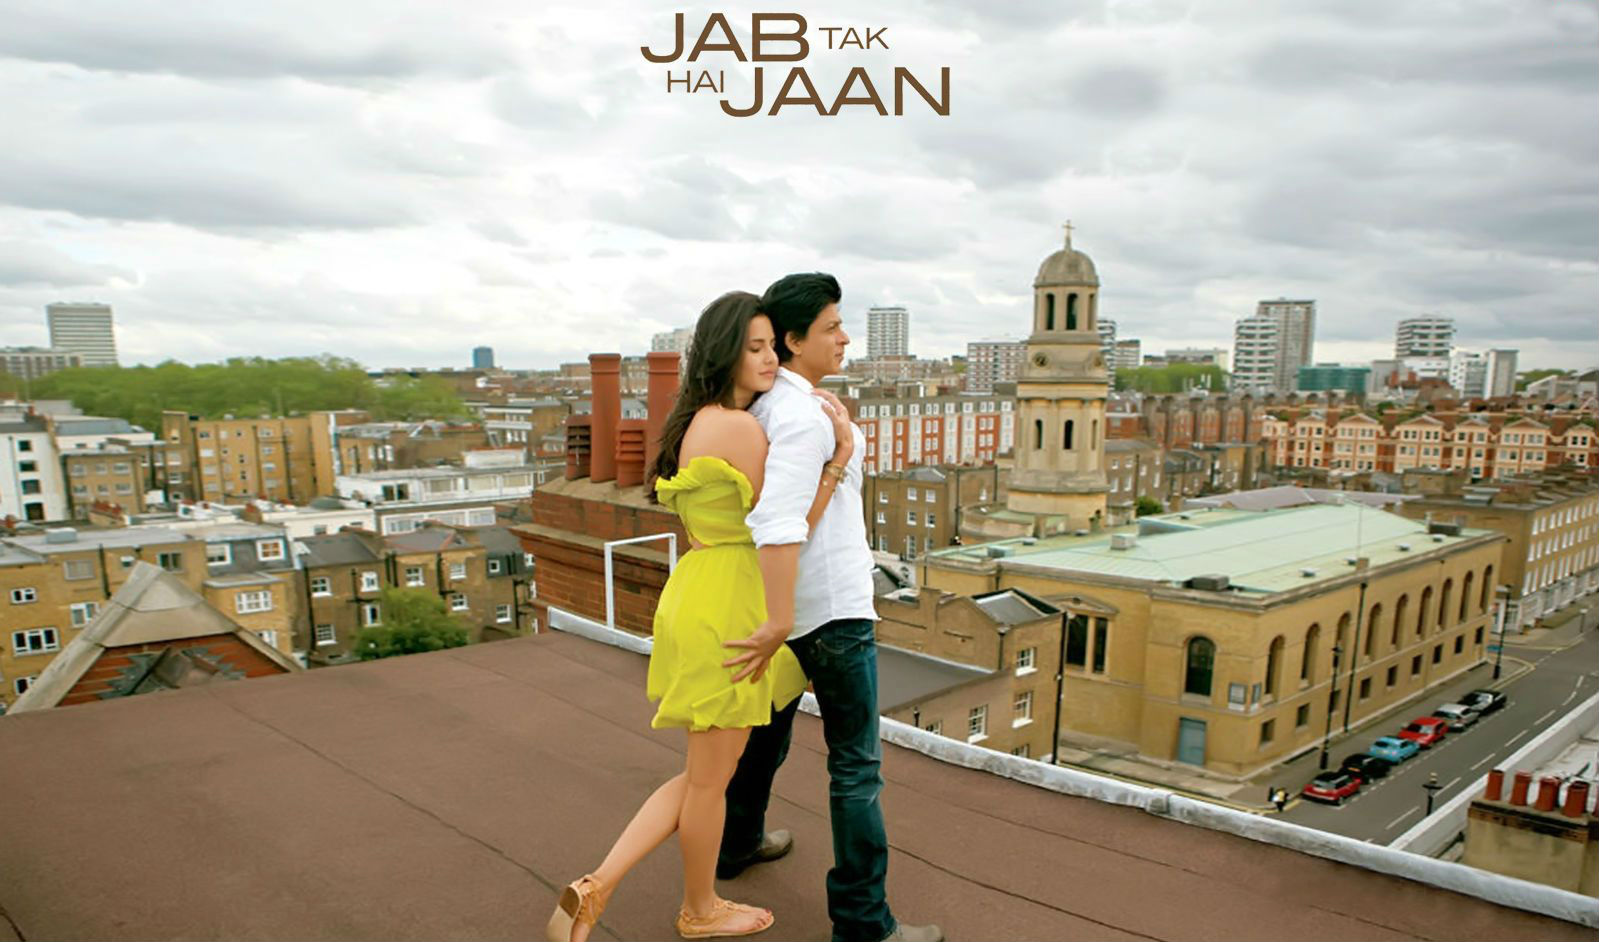 Jab Tak Hai Jaan Movie Still  Jab Tak Hai Jaan Wallpapers Hd 1366x768